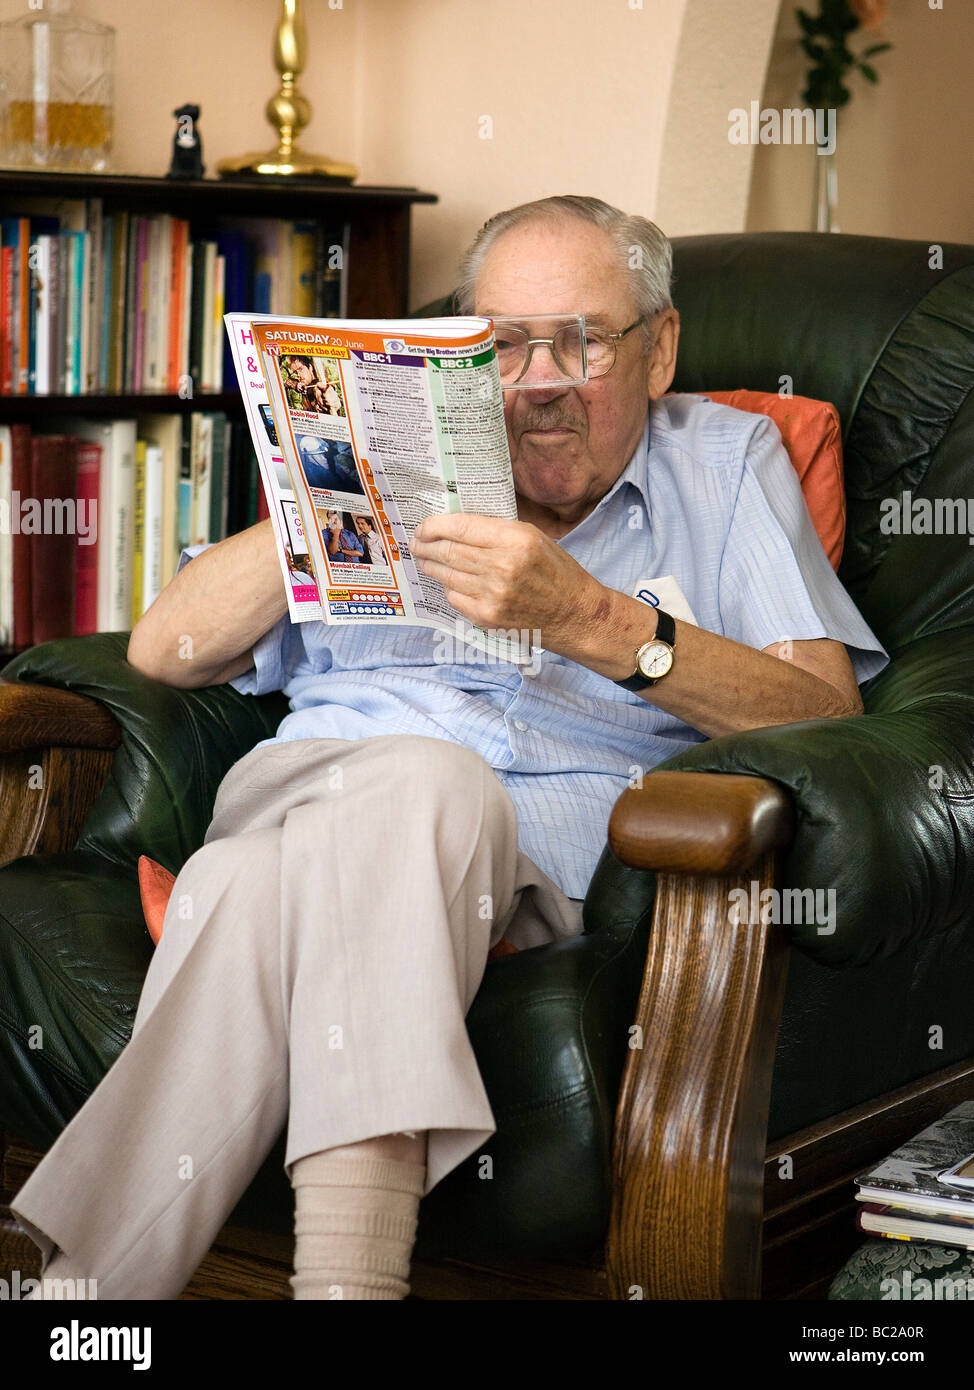 lounge chair leather fritz folding chairs old man sits in his favourite armchair reading the television pages stock photo, royalty free ...